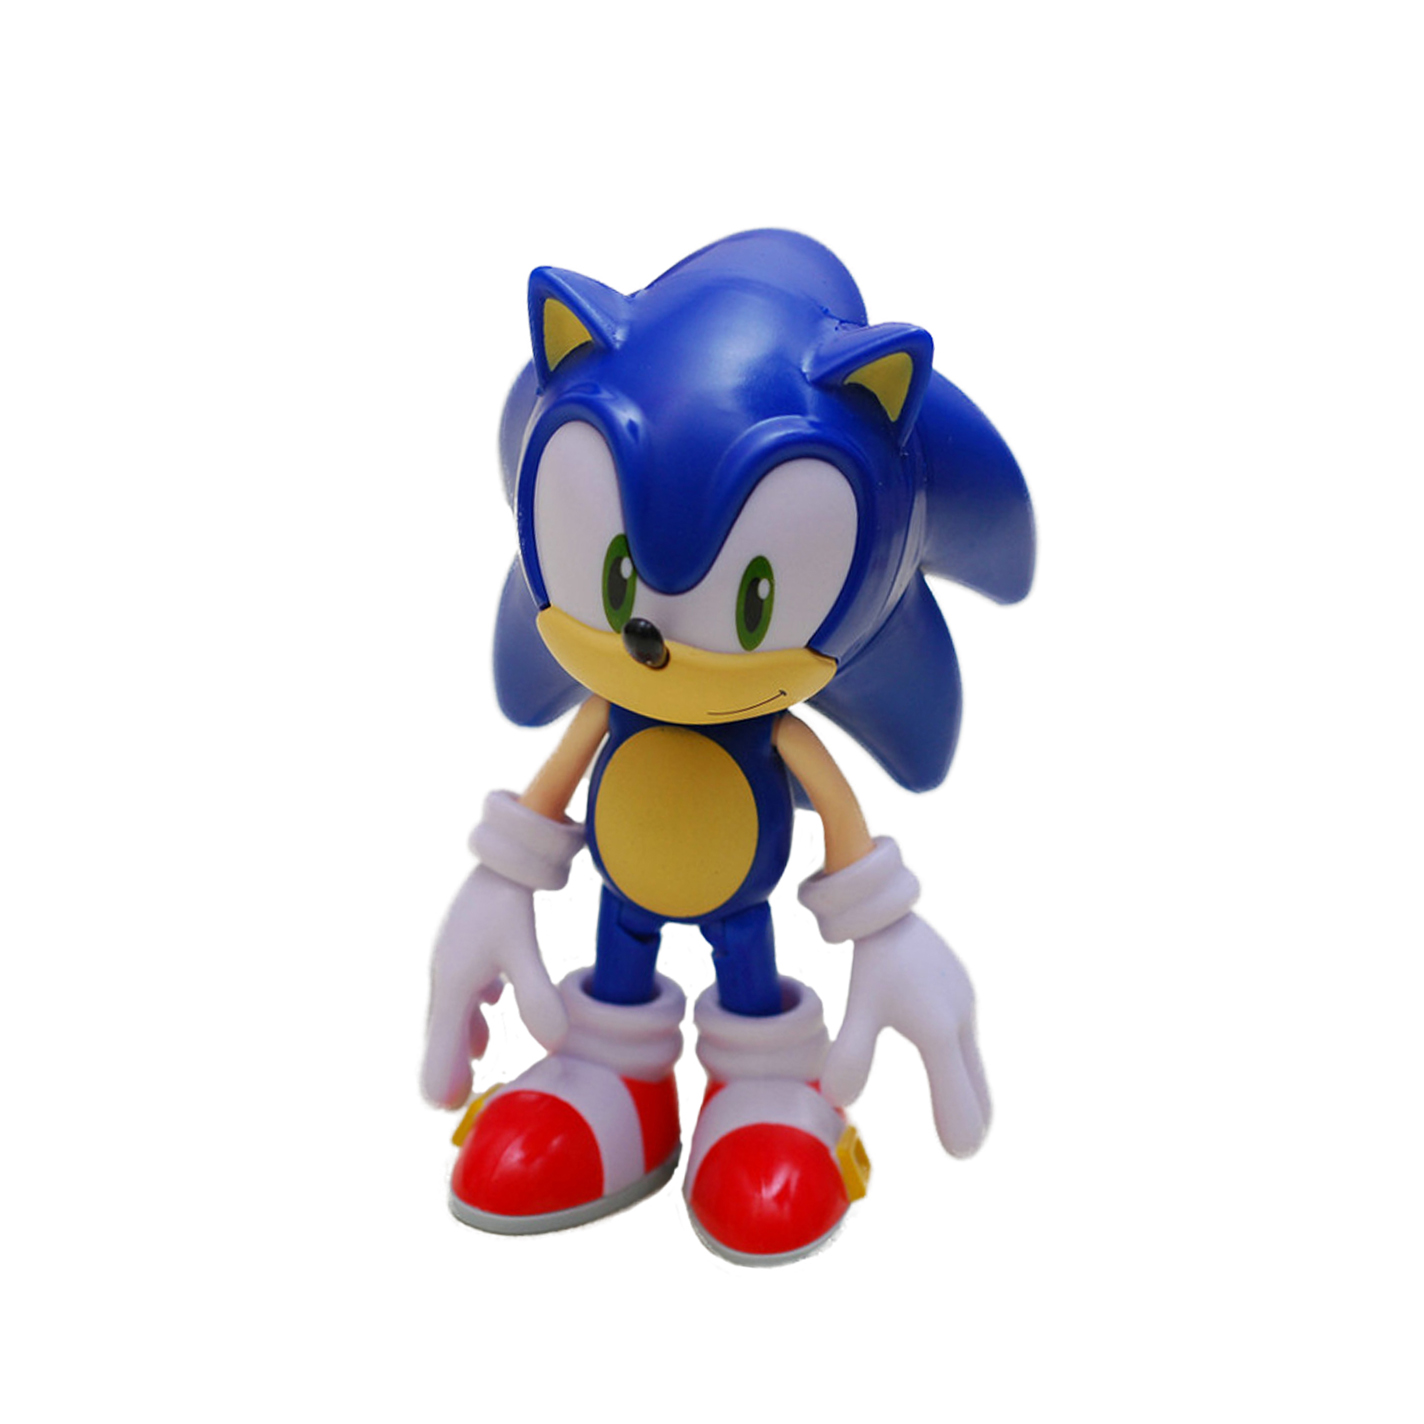 Chanycore GSC Nendoroid 566# Sonic Supersonic speed Hedgehog Action Figure Collection Model Toy 10cm 4